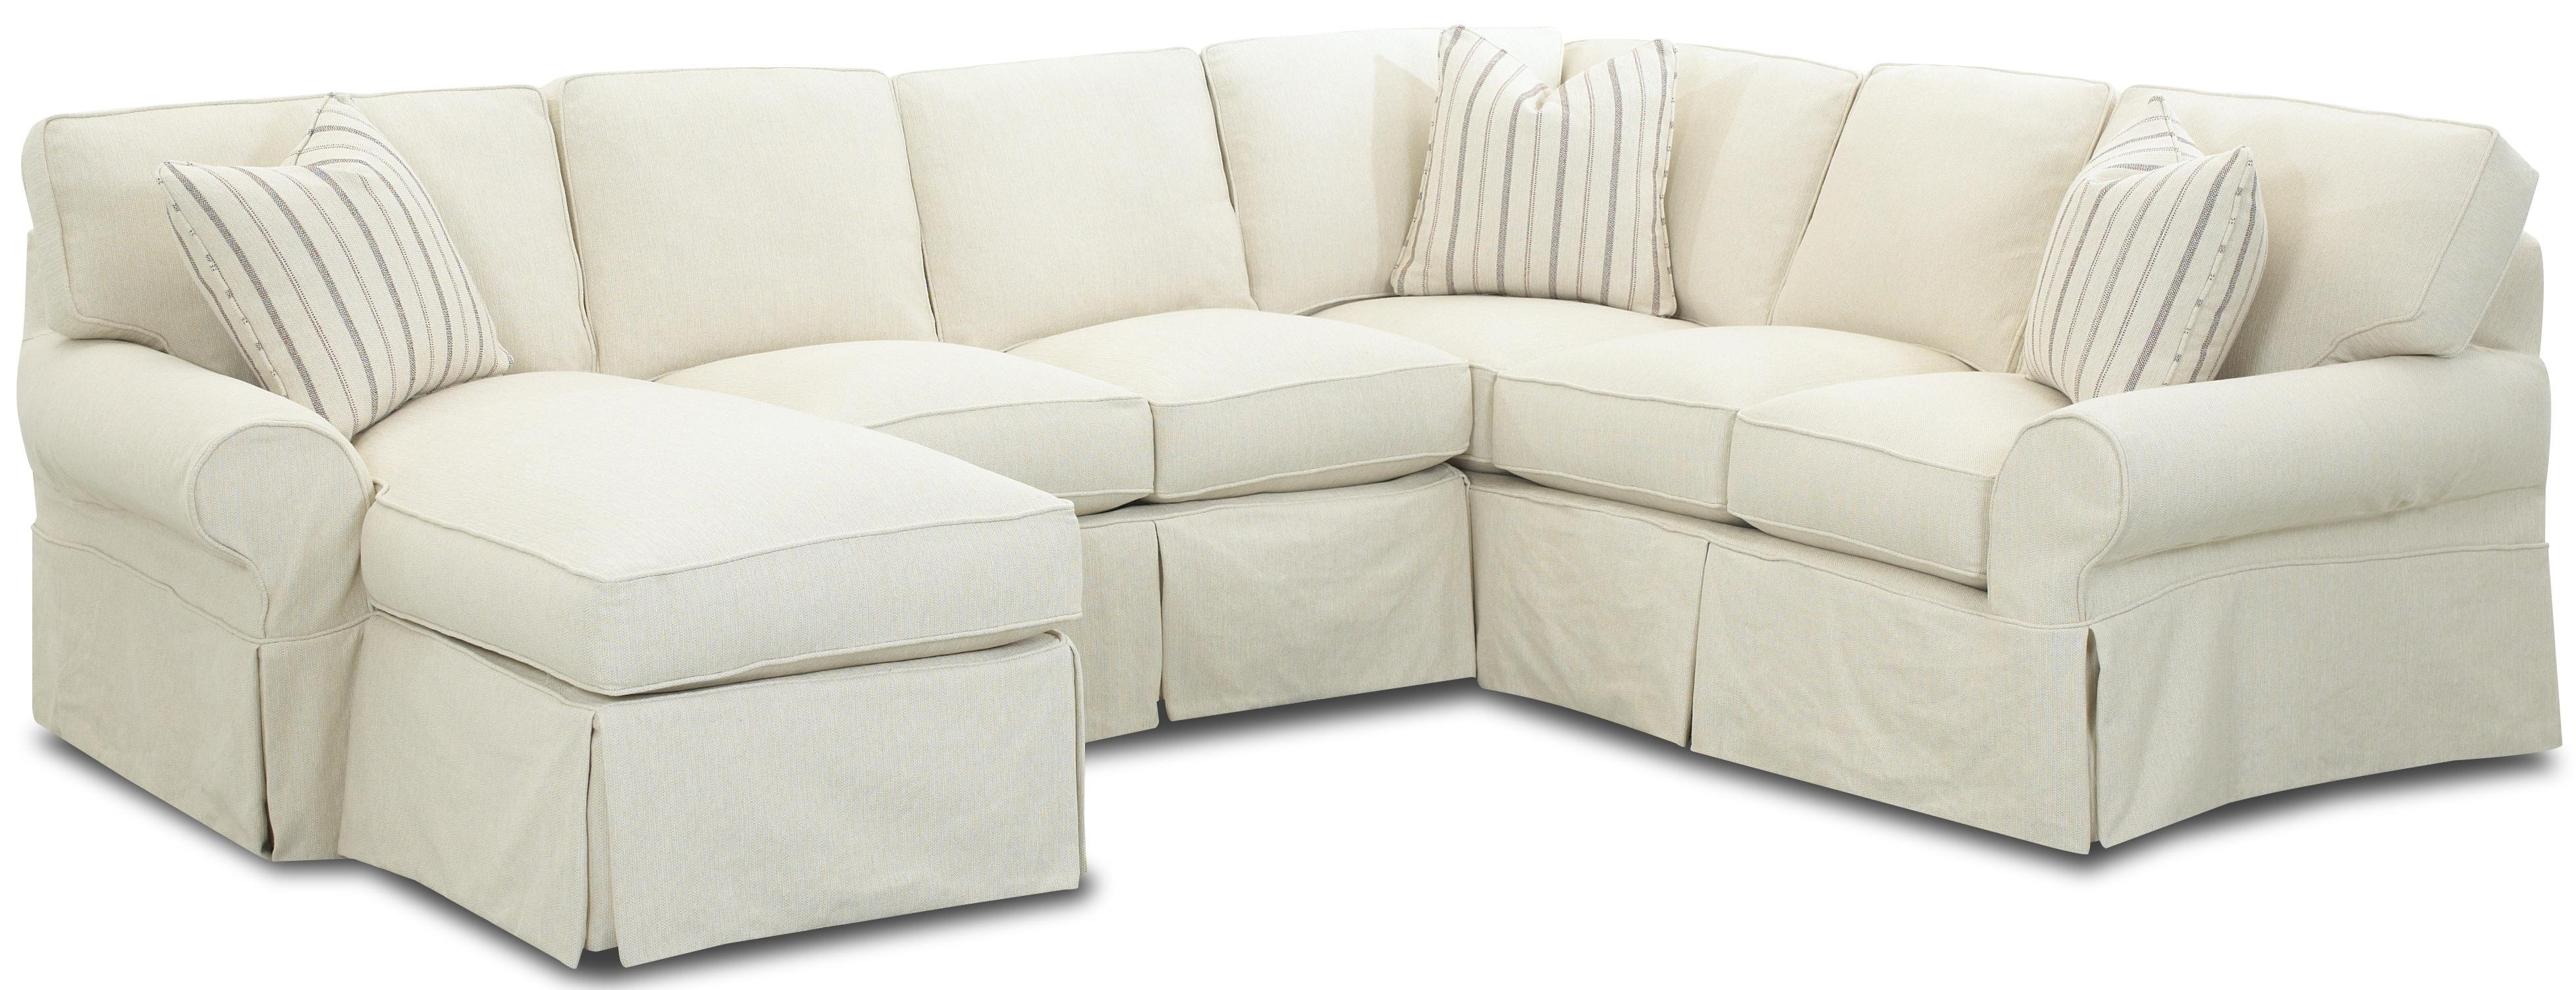 Couch Pertaining To Slipcovered Sofas With Chaise (View 3 of 15)